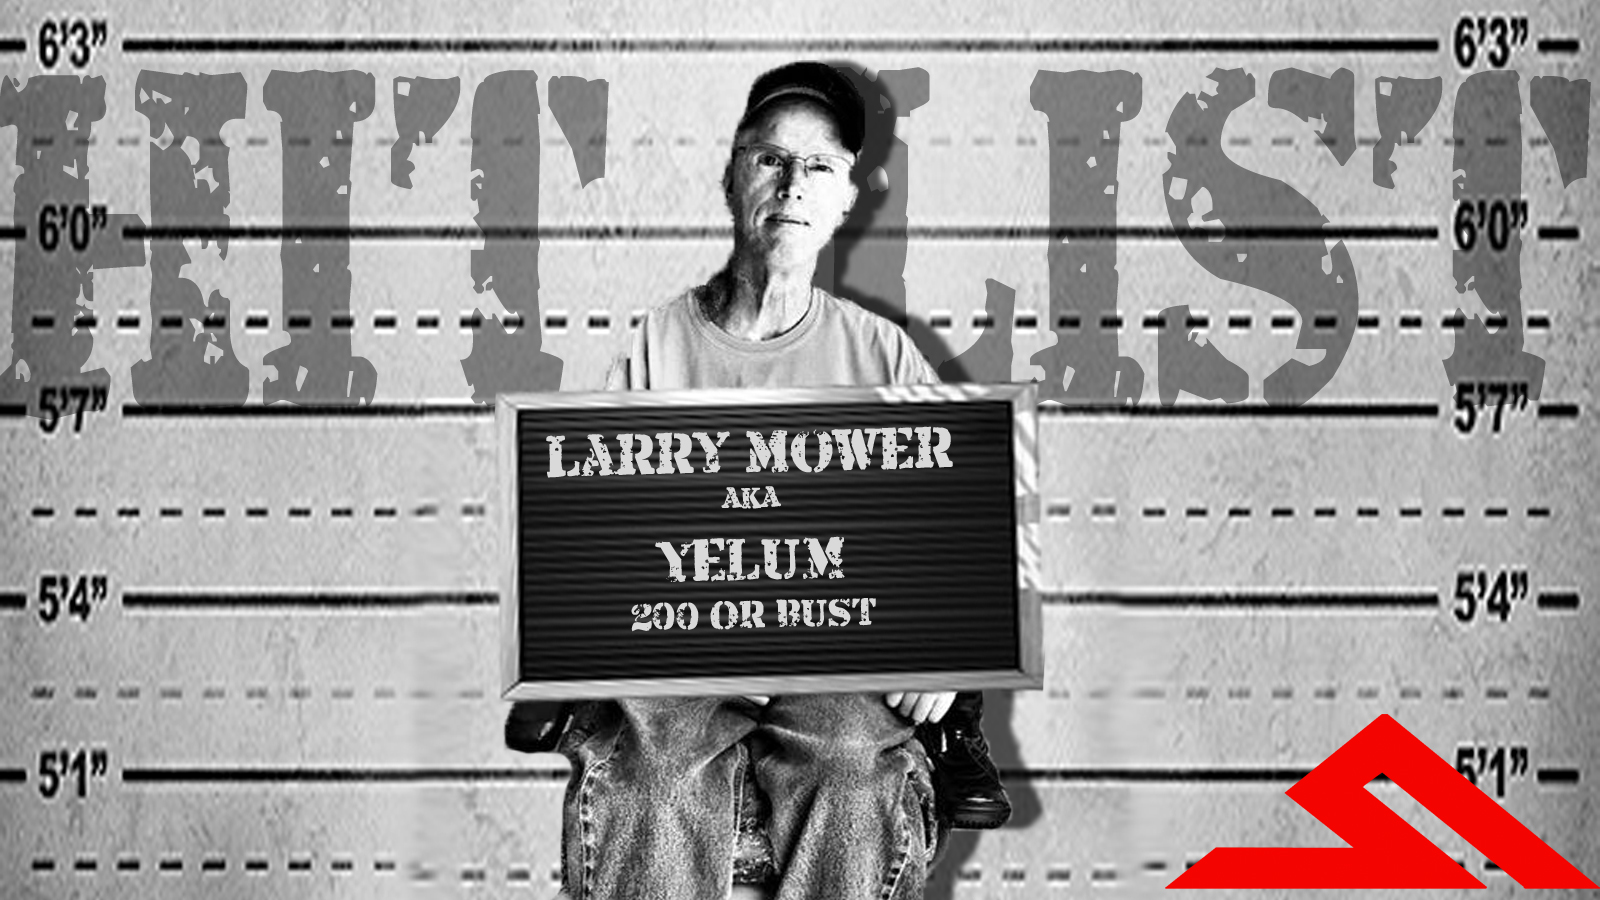 HITLIST LARRY MOWER